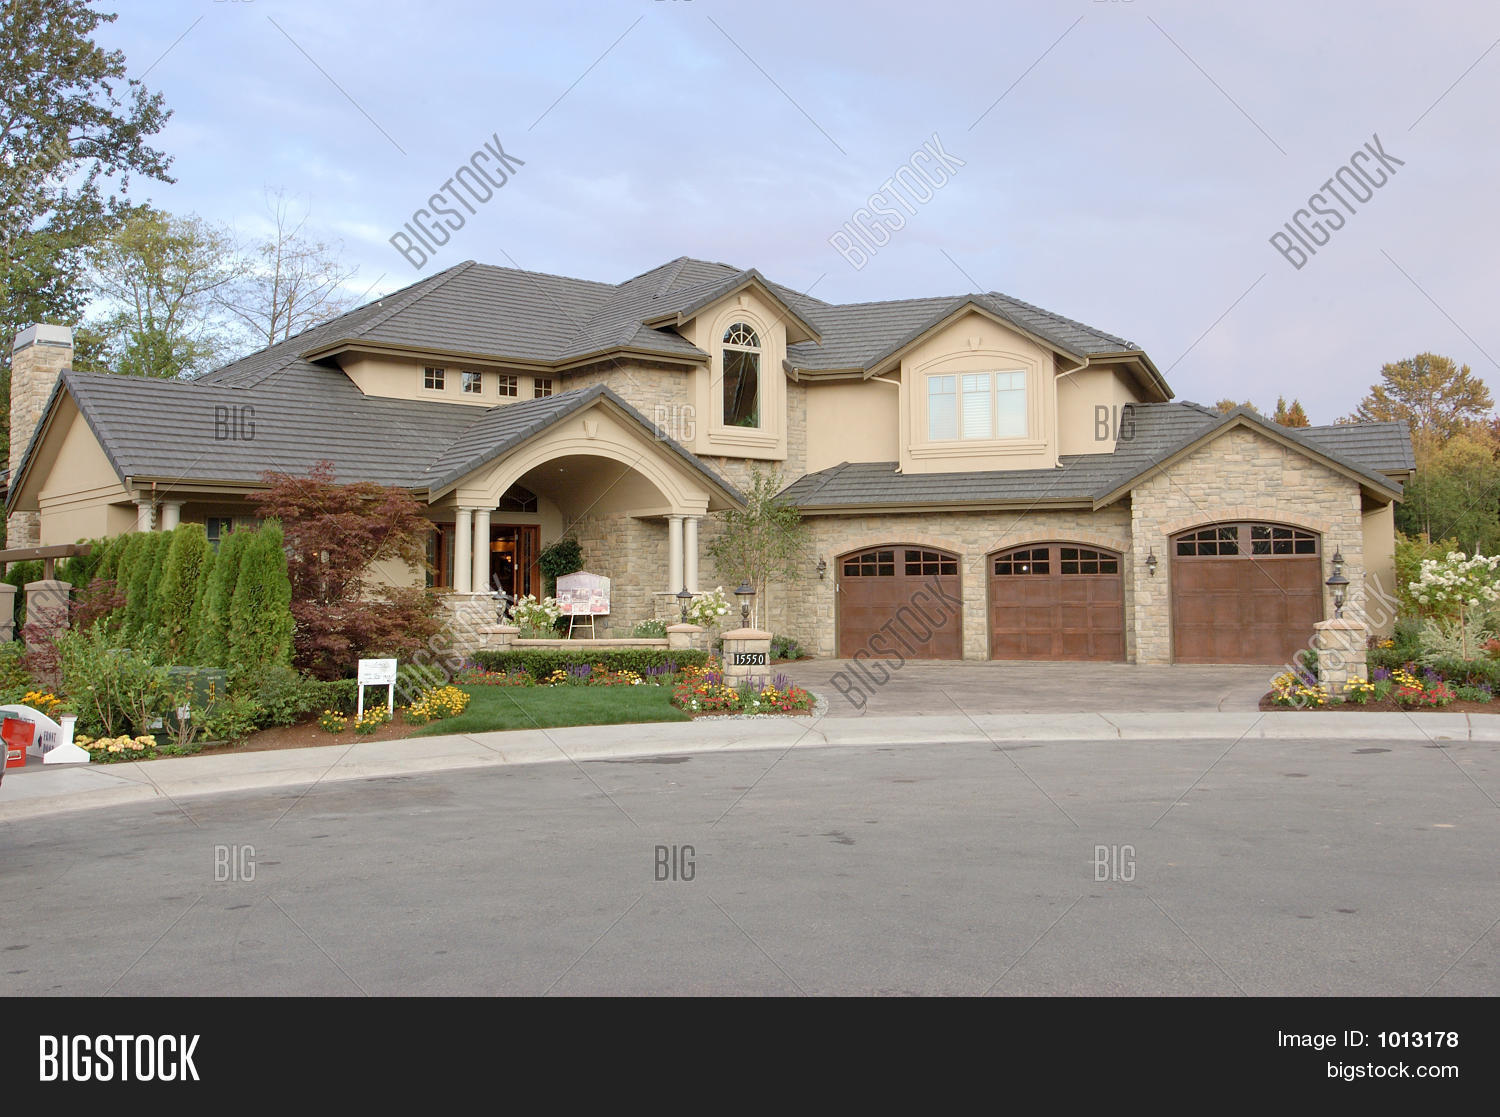 Luxury american house image photo bigstock for Big houses in america